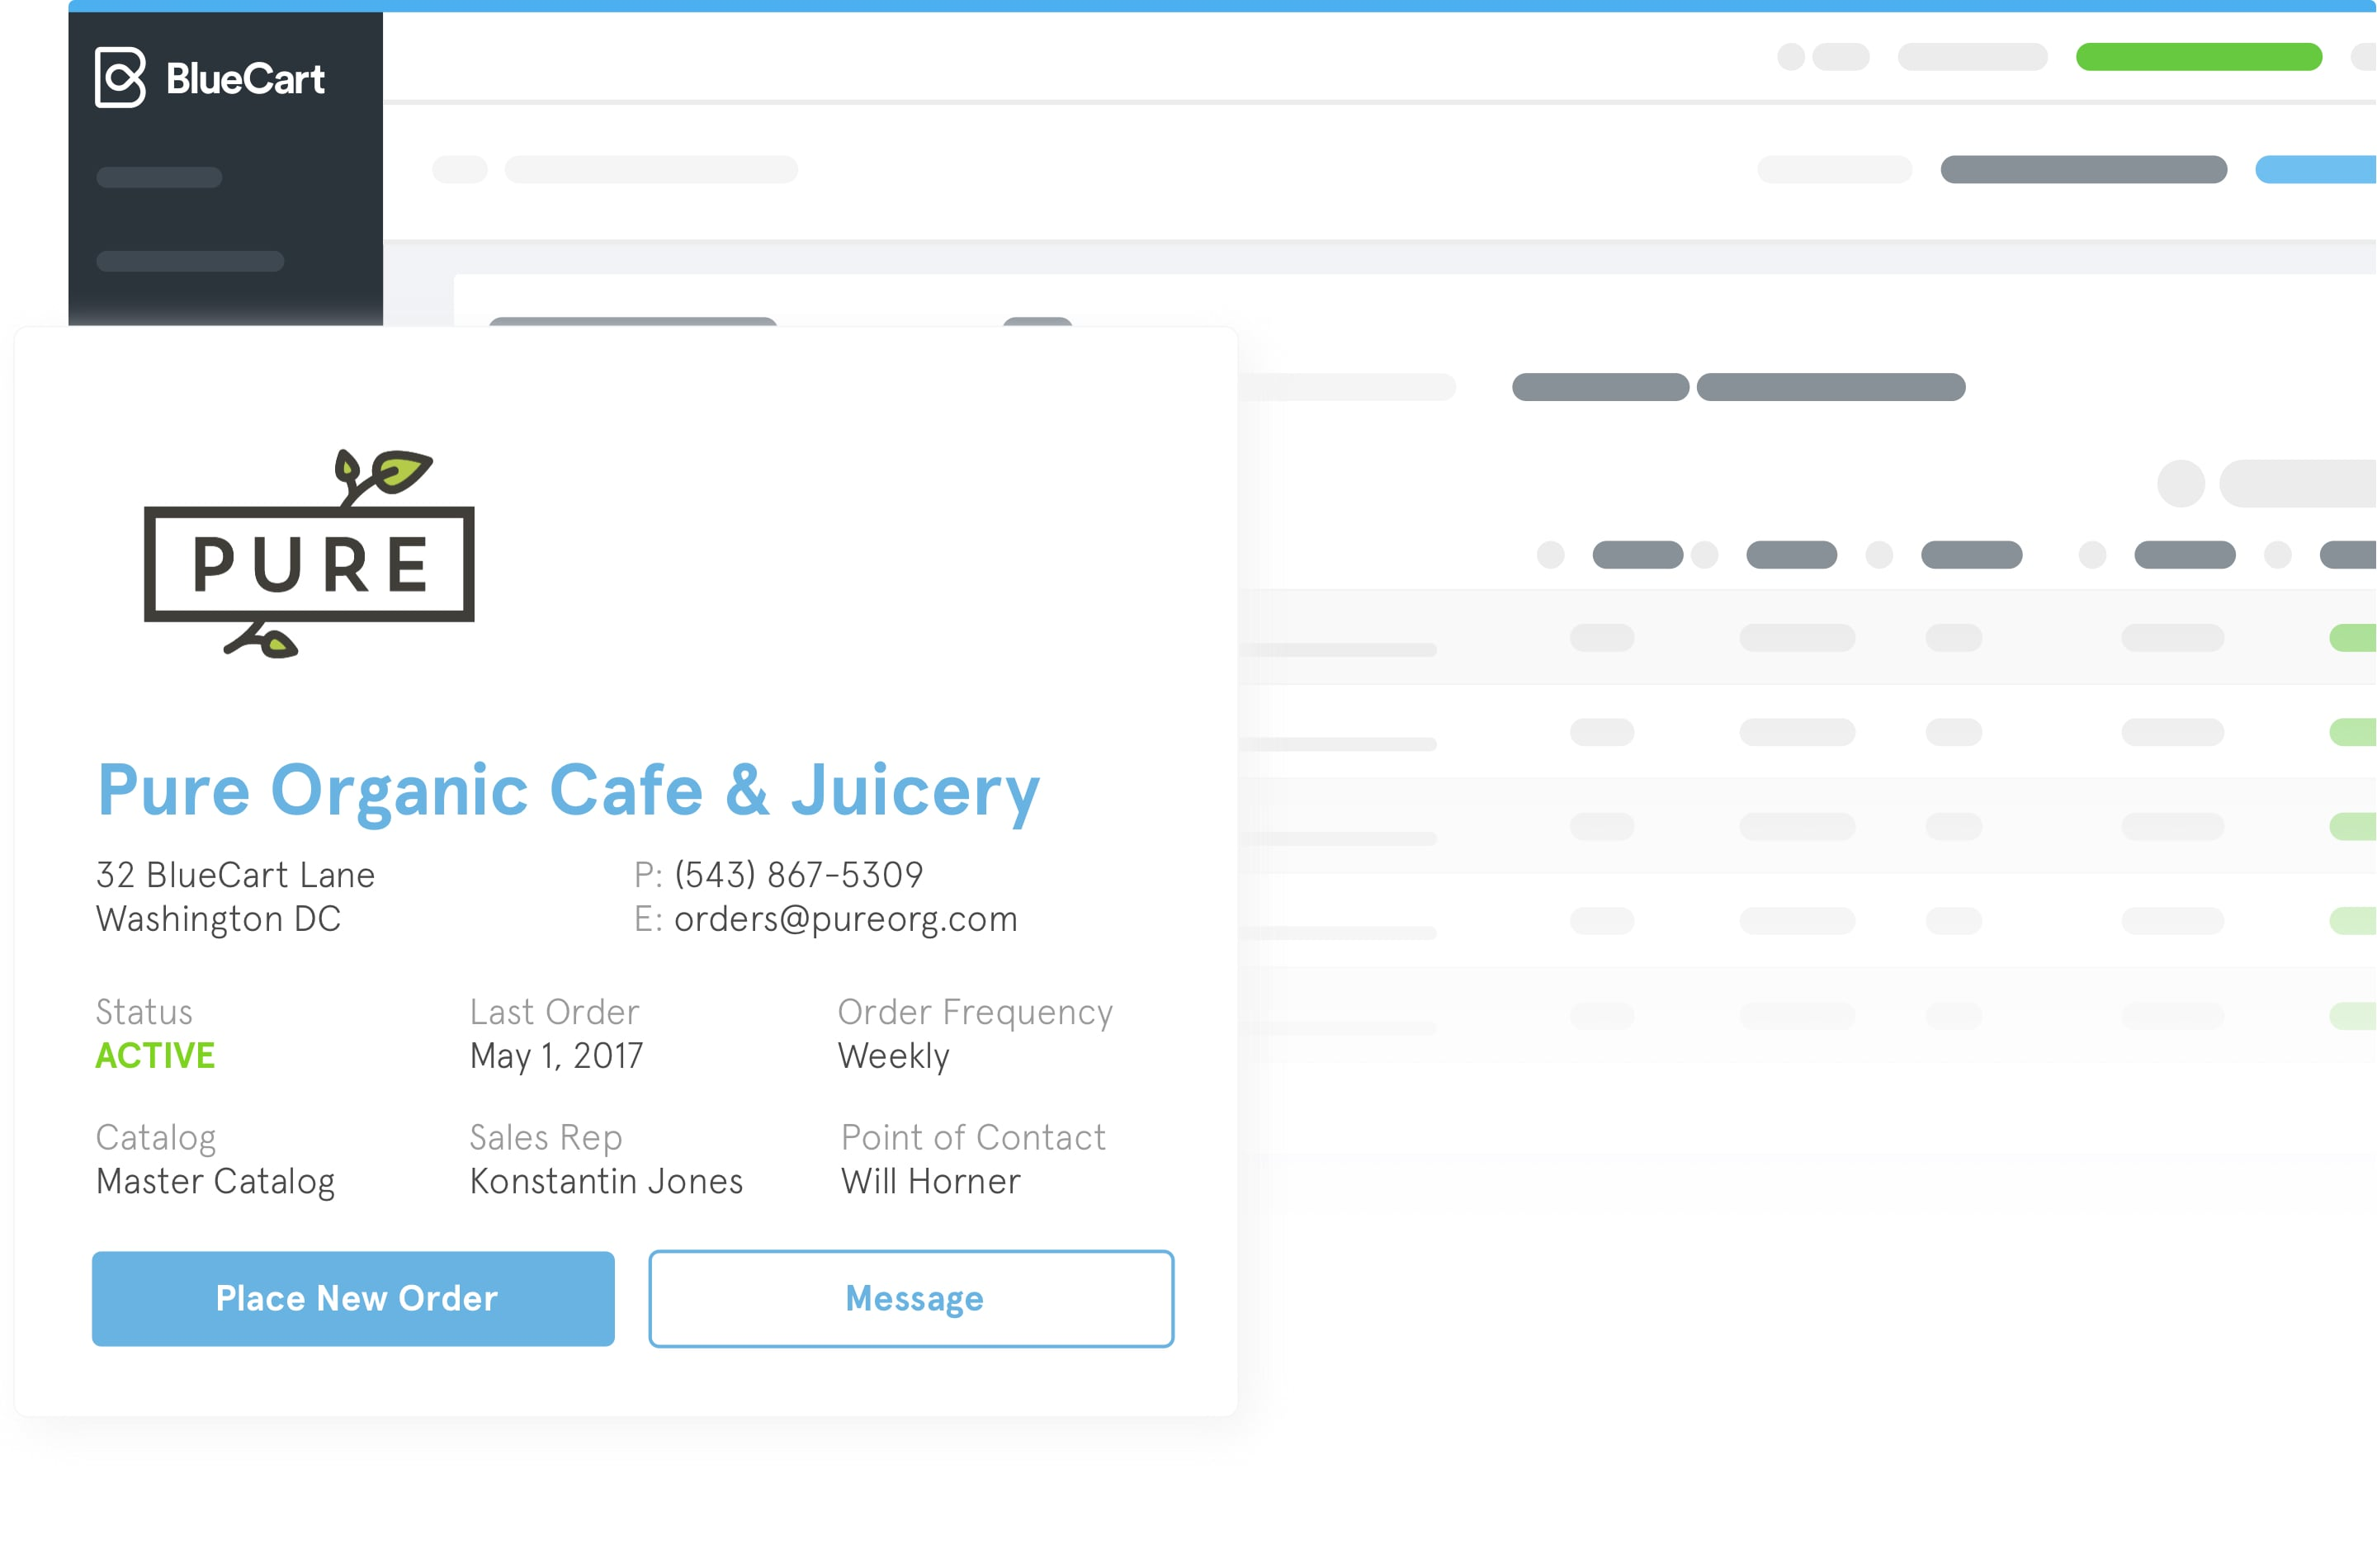 A preview of how a customer who owns an organic cafe could appear within the BlueCart platform.